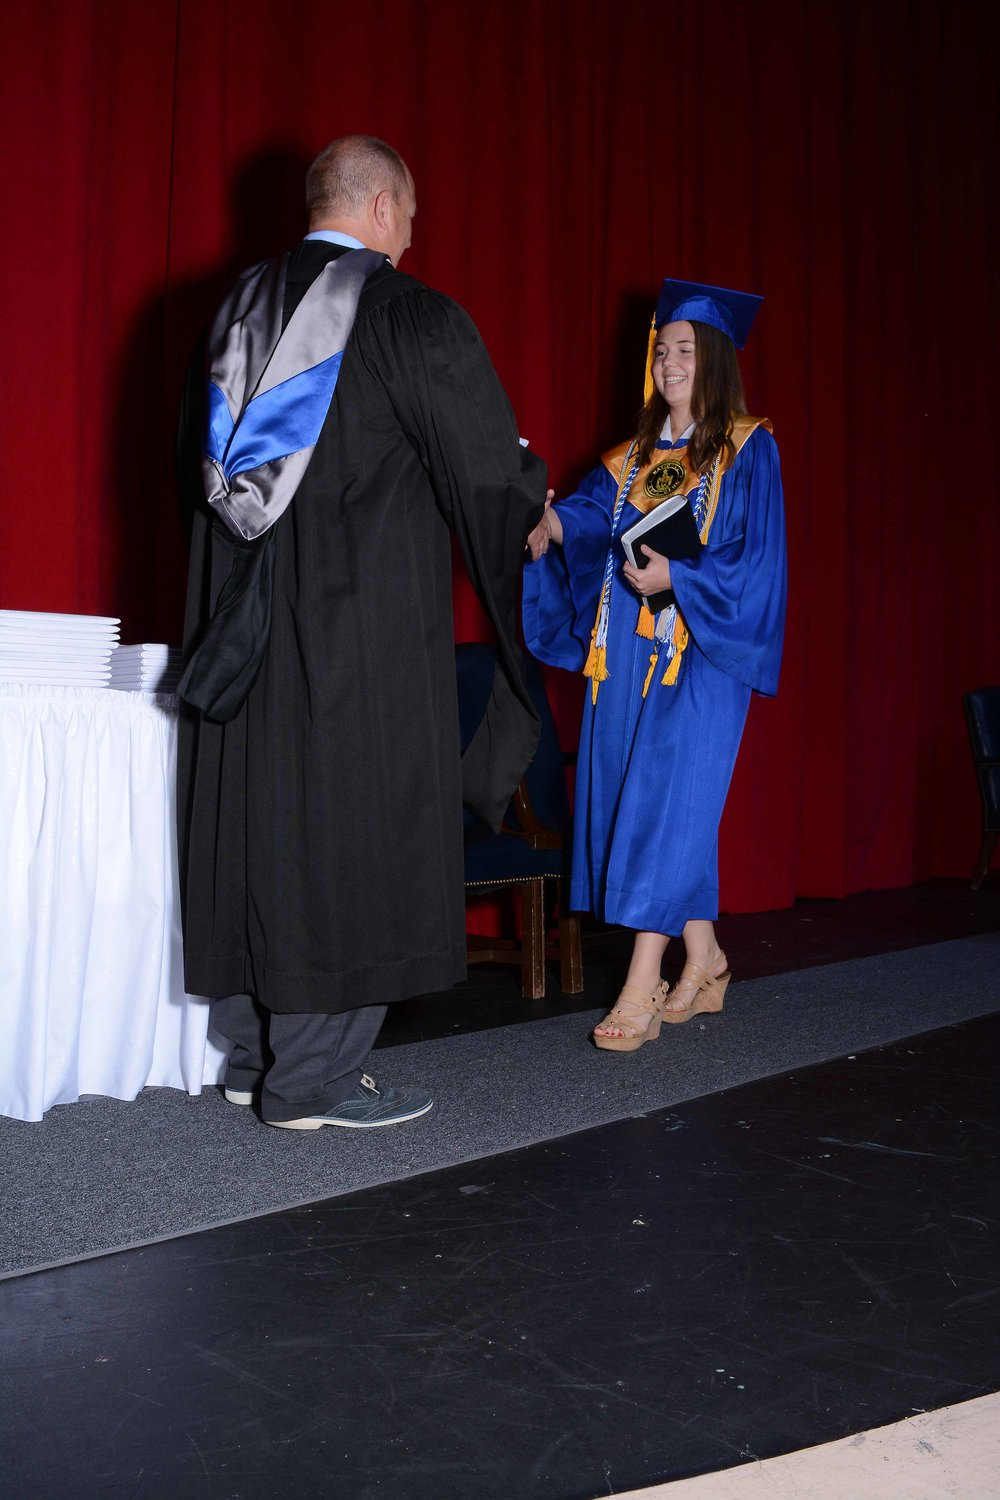 May14 Commencement102.jpg